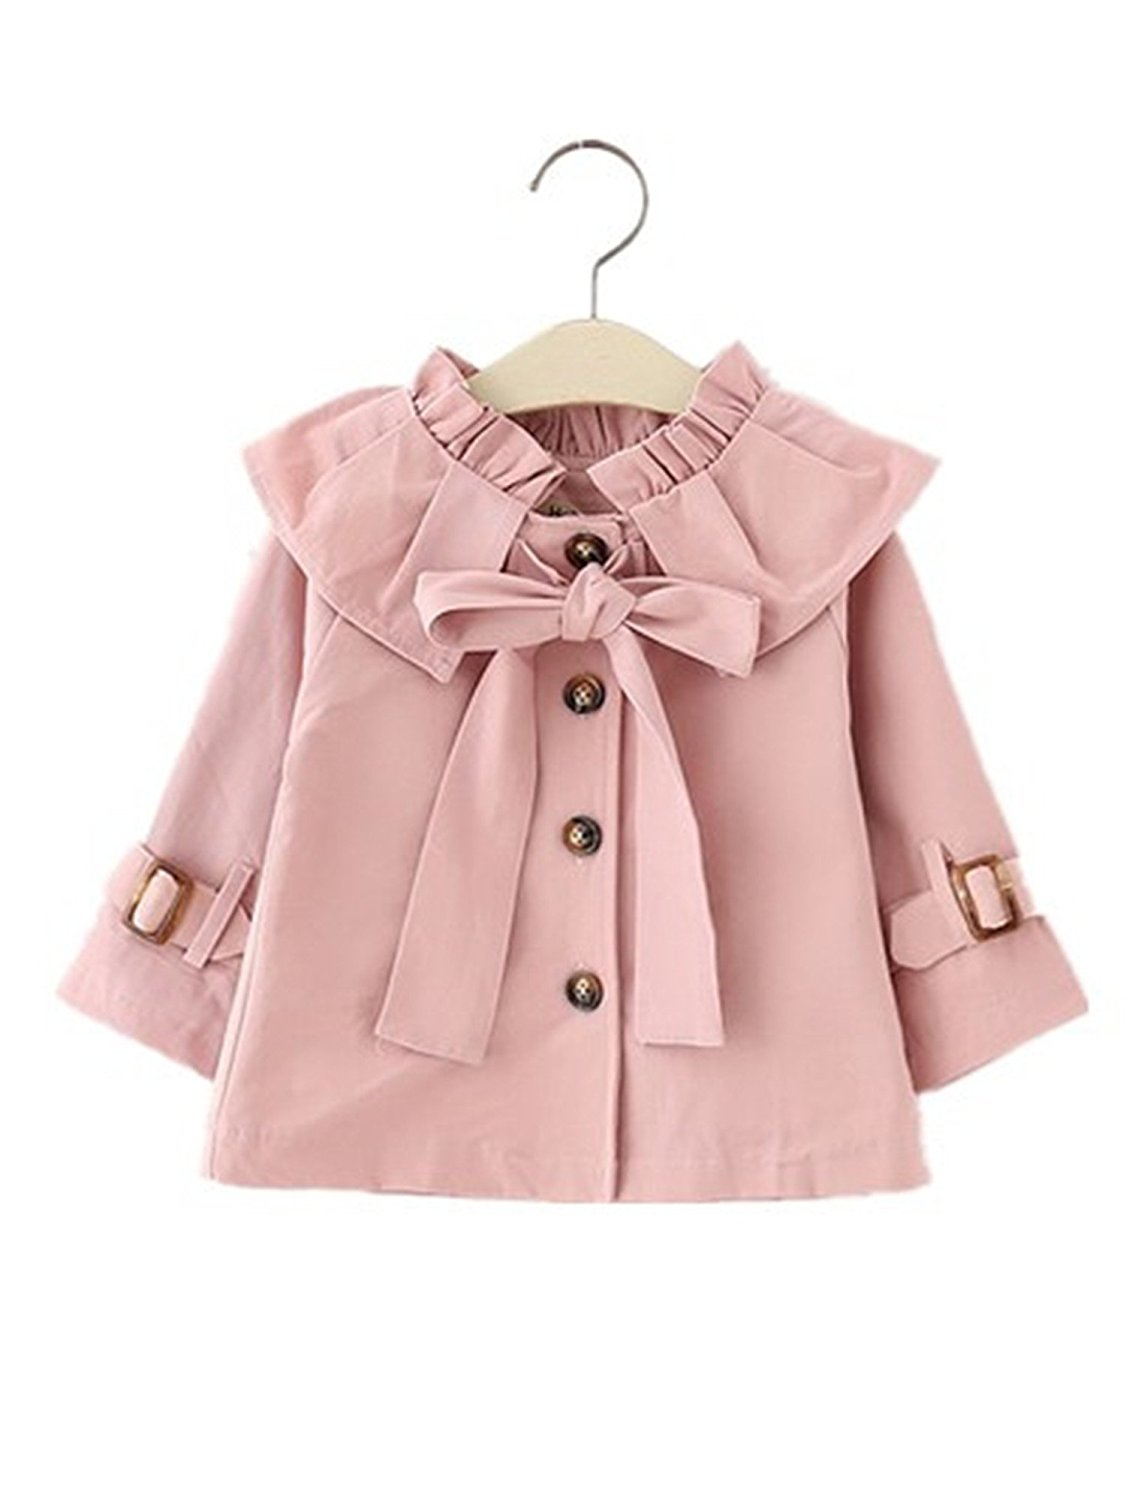 3e078e13d Get Quotations · Samuel Roussel New Spring Autumn Girls Trench Coat Fashion  Outwear Kids Blazer Jackets Baby Girls Clothes